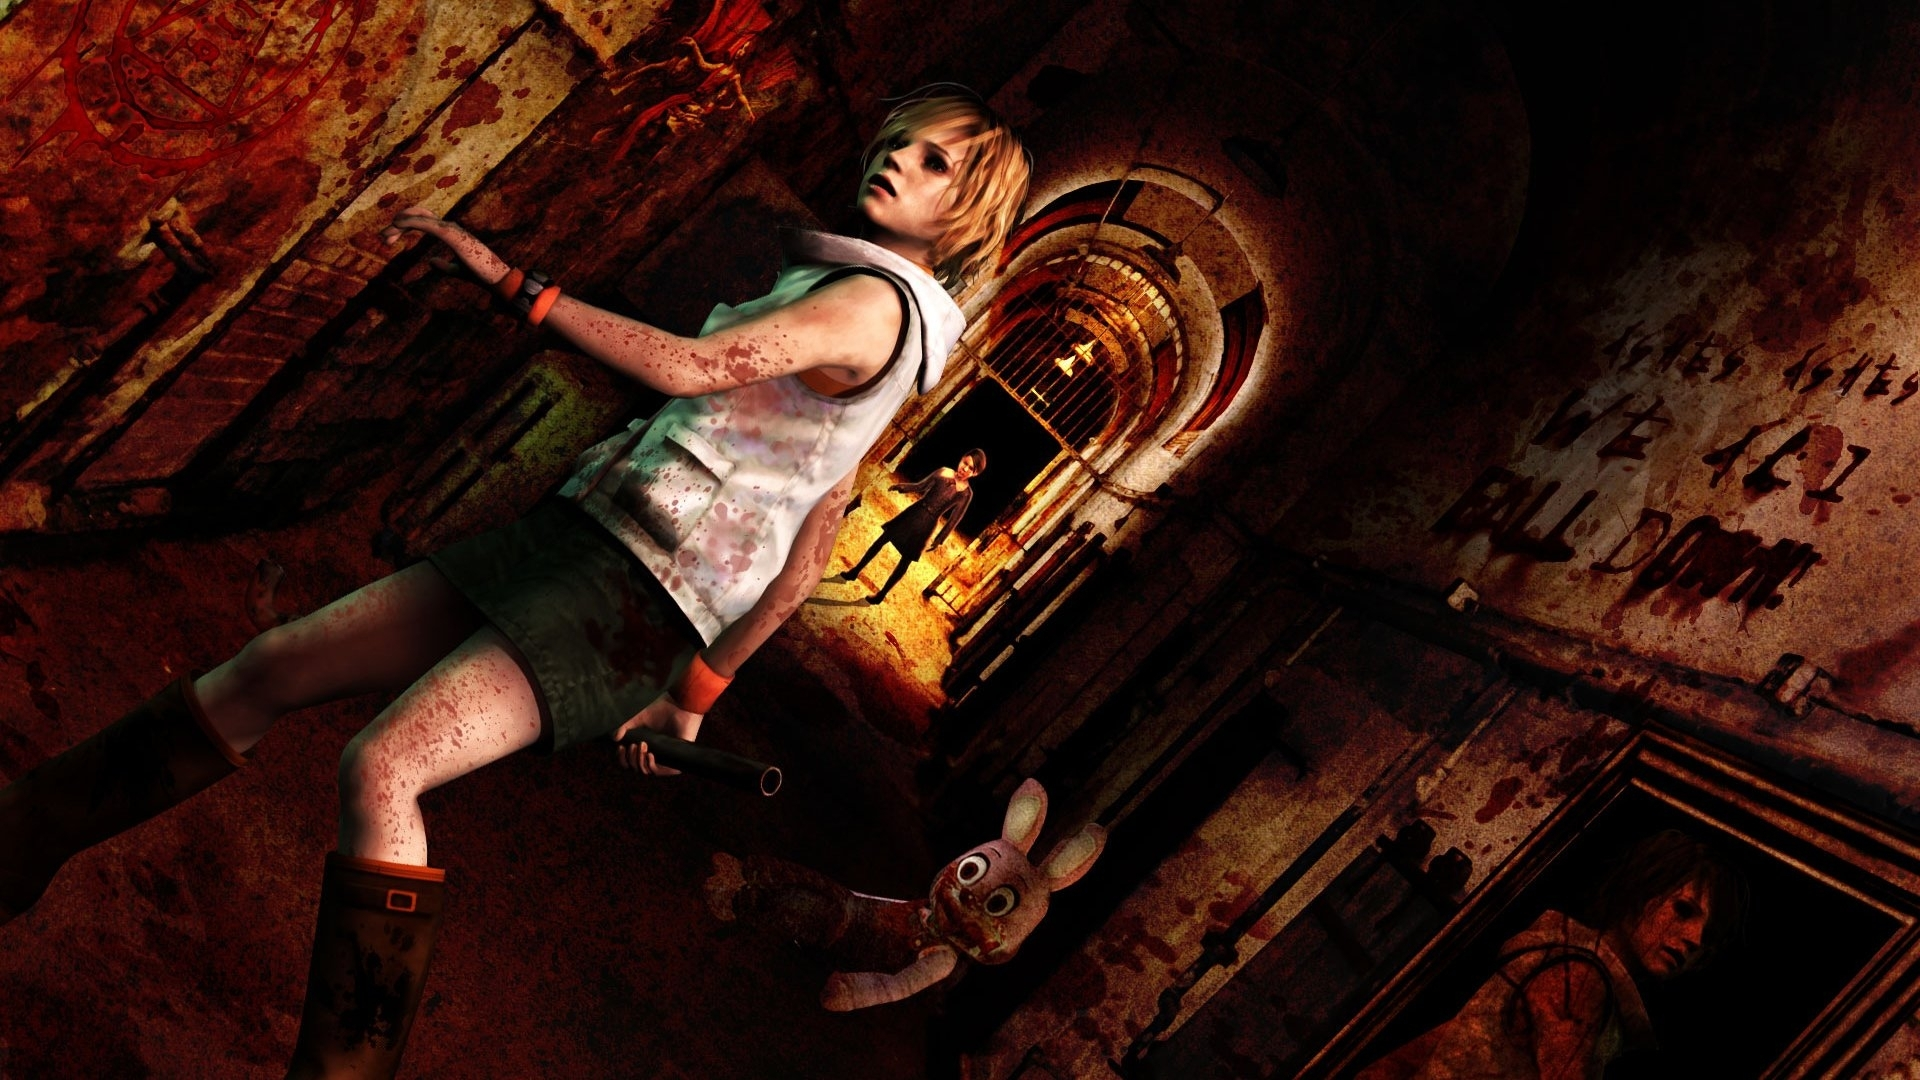 silent hill 3 full hd wallpaper and background image | 1920x1080